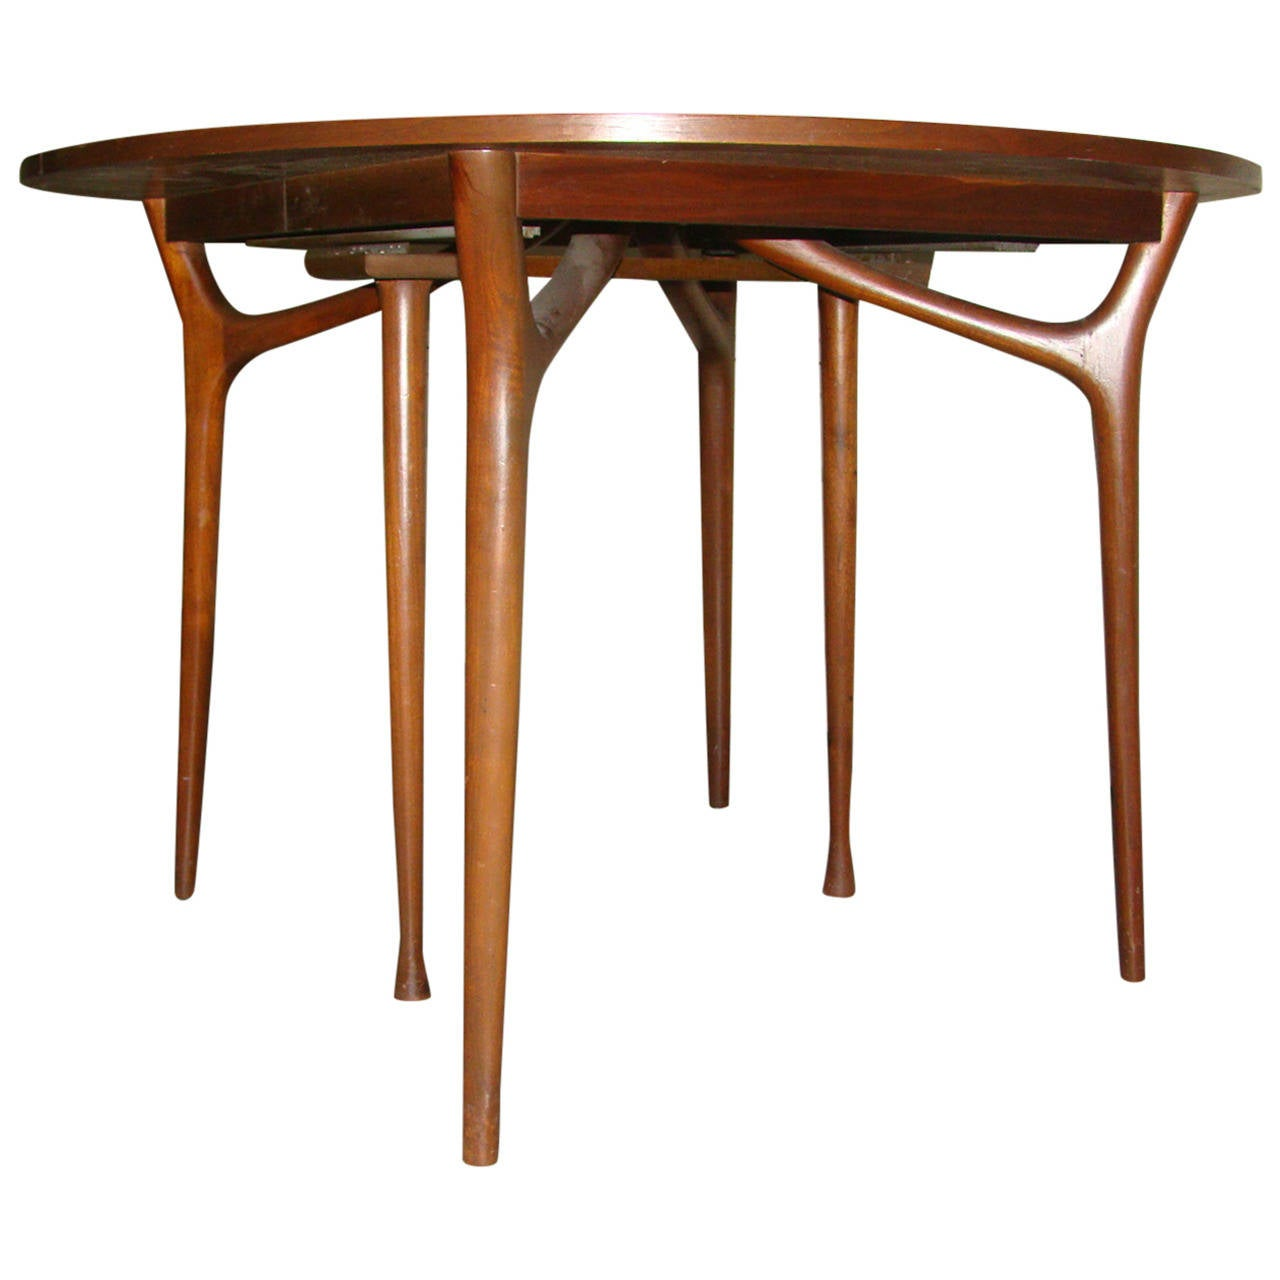 "Modern Expandable Dining Table: Sculptural Danish Modern Expandable ""Spider"" Dining Table"